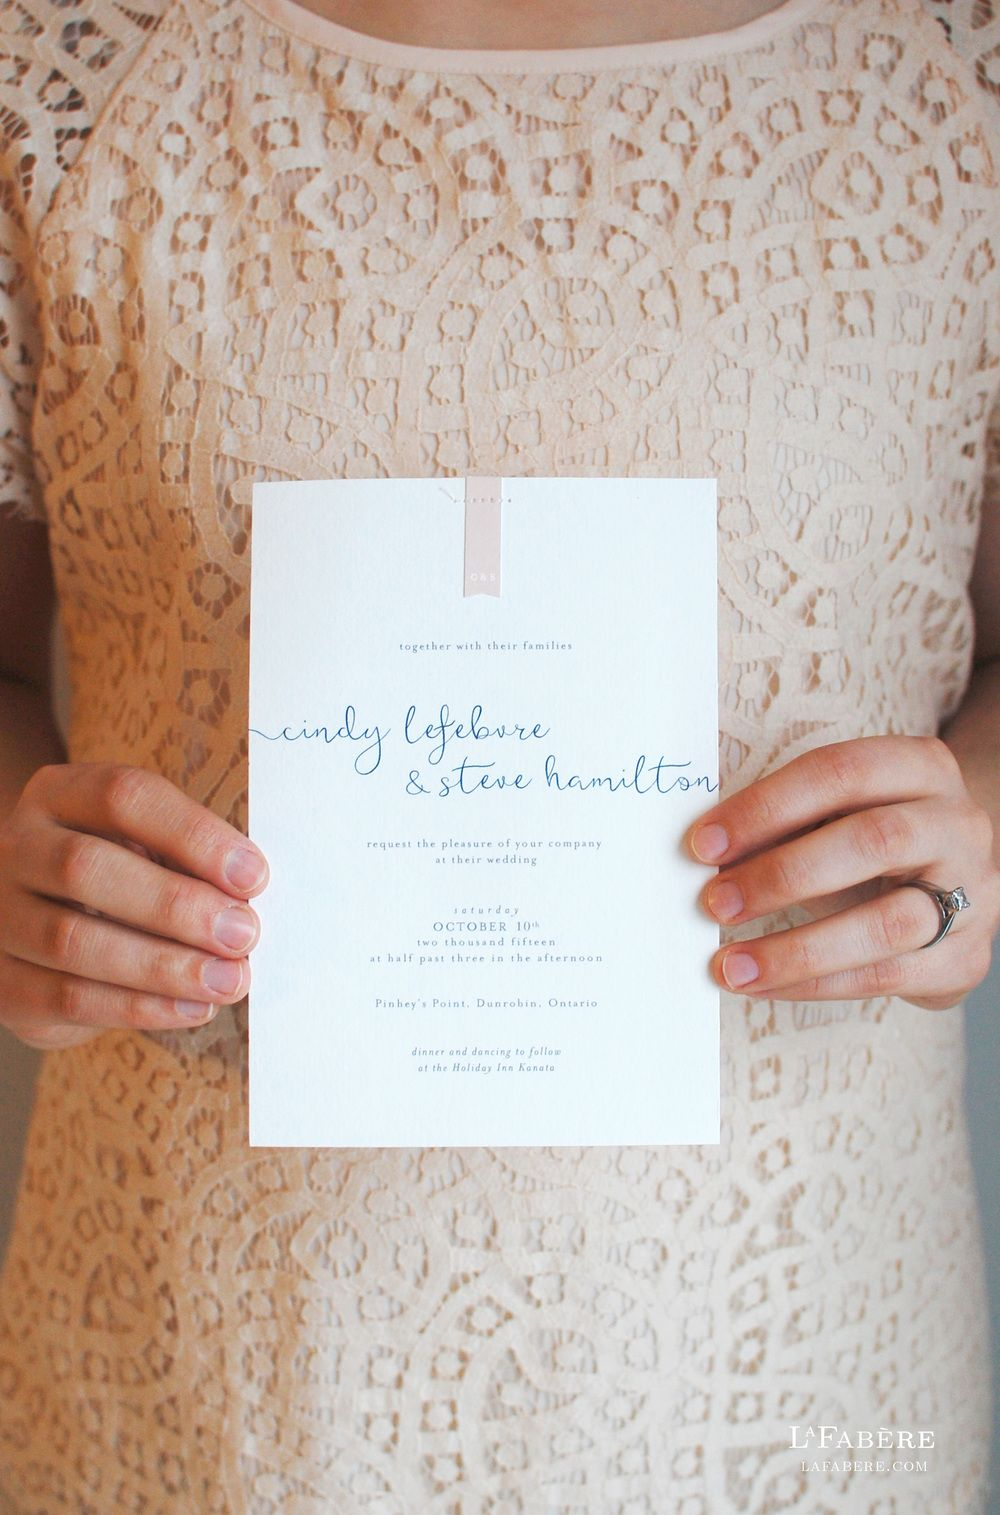 Delicate whimsical wedding invitation design by lafabre lafabere delicate whimsical wedding invitation design by lafabre lafabere stopboris Image collections